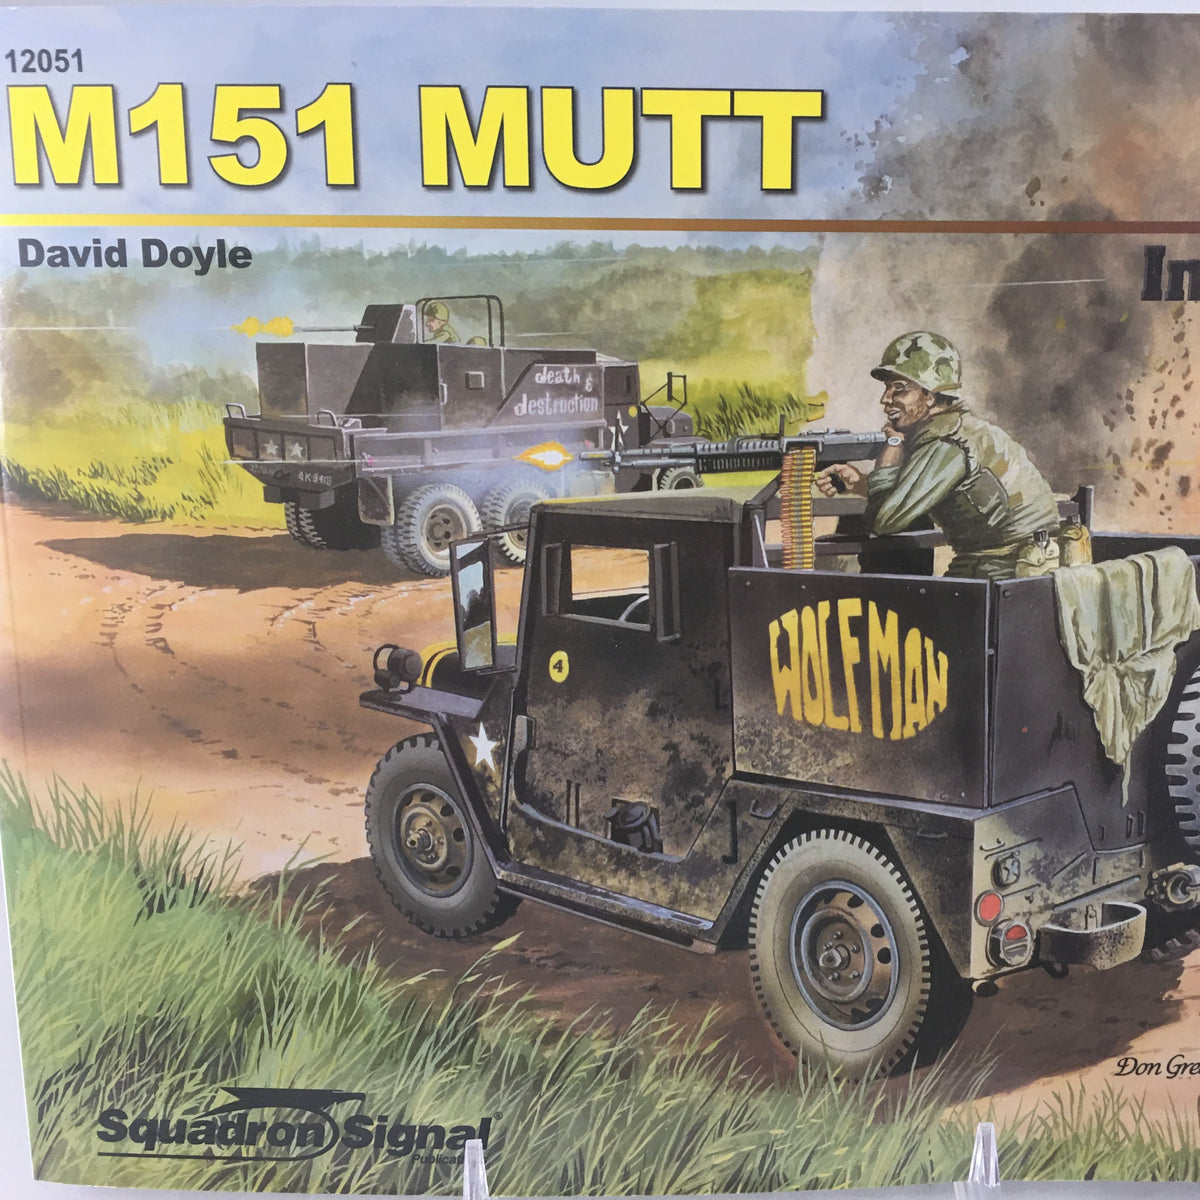 M151 Mutt Vehicle Book